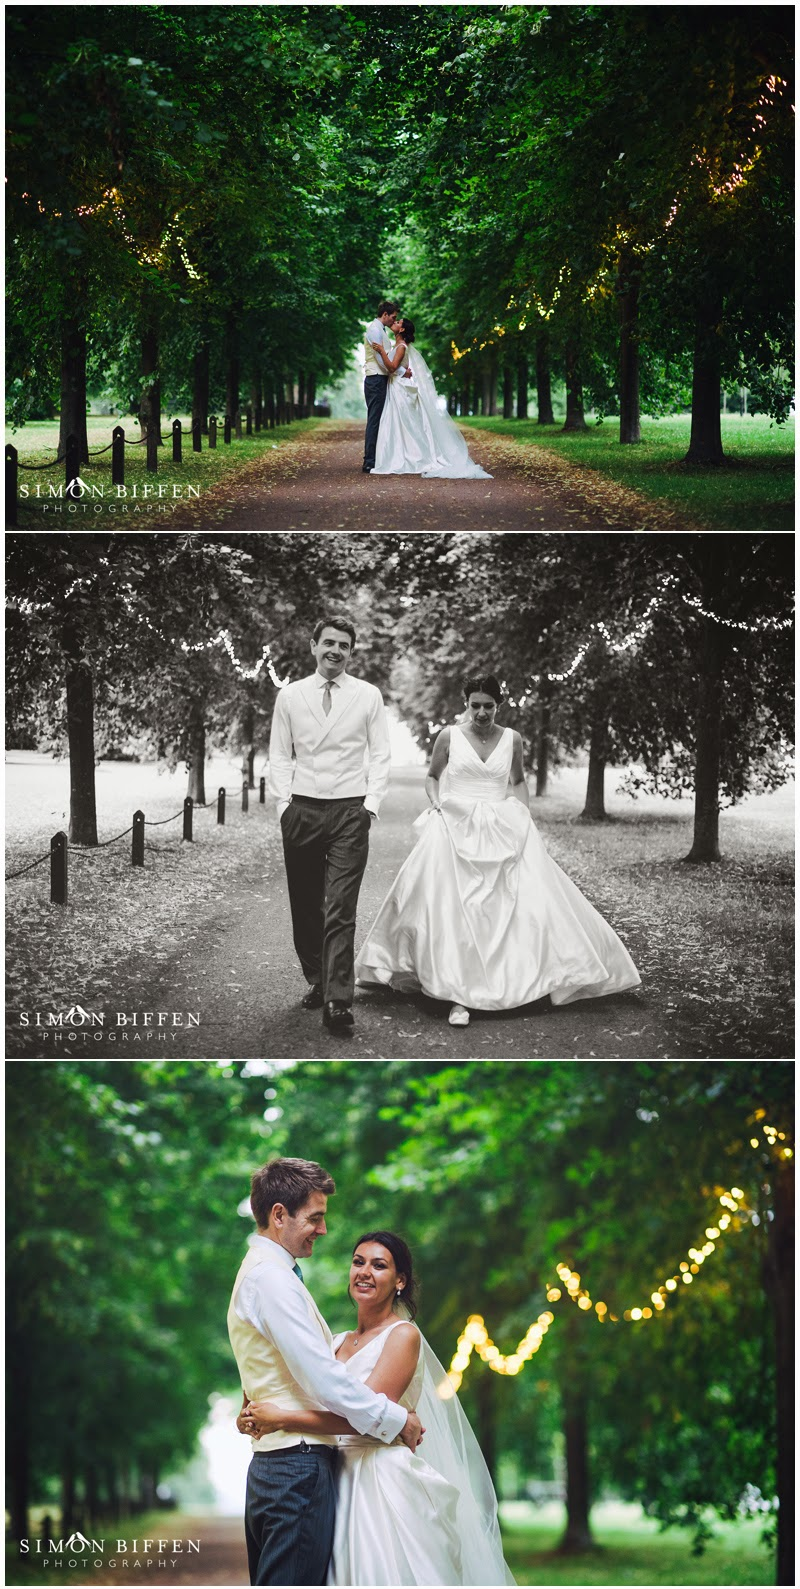 Dusk Bride and Groom photography at Polesdon Lacey wedding